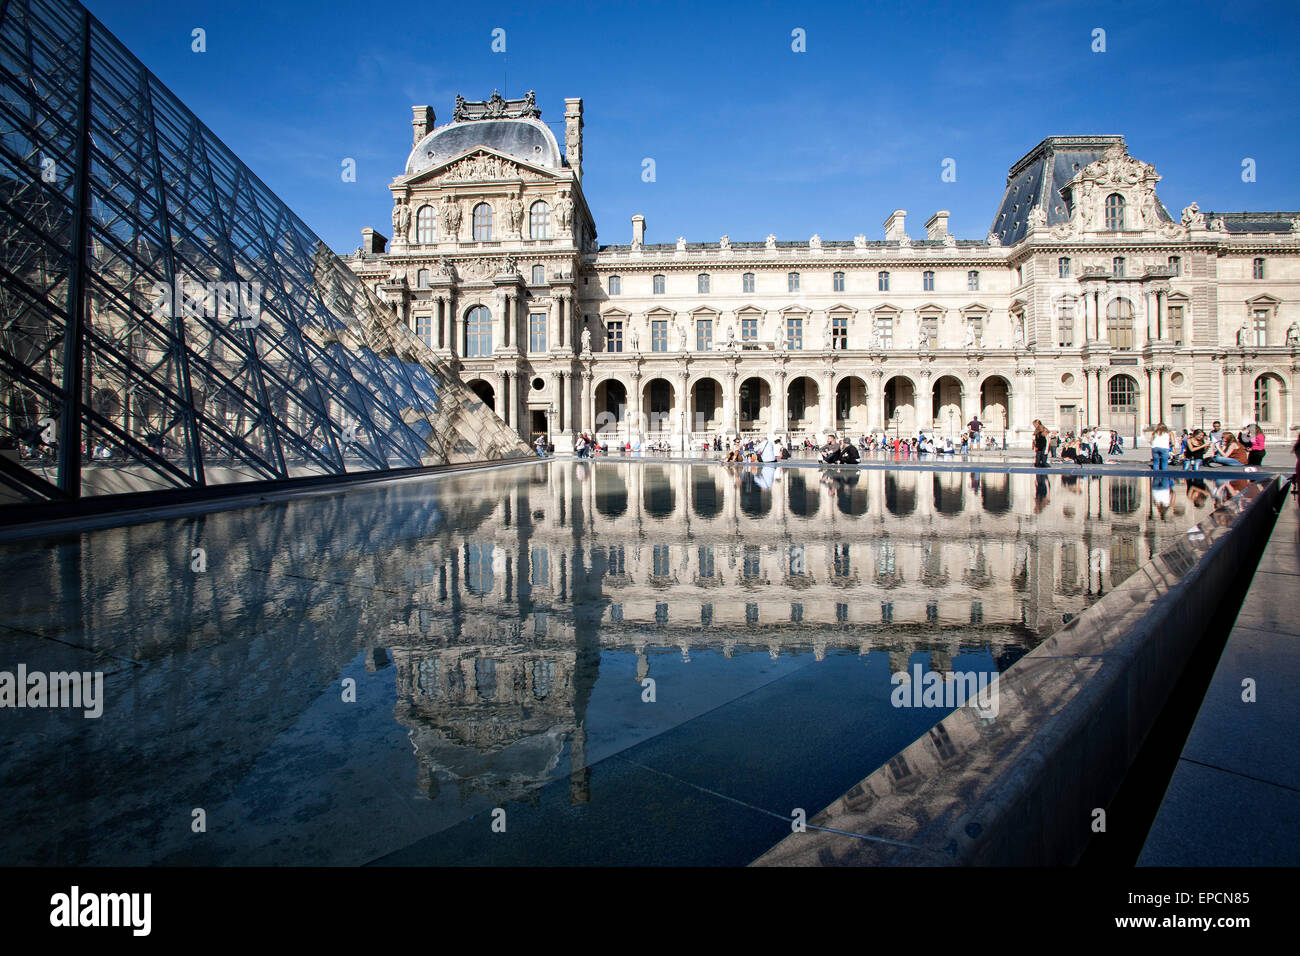 Tourists congregate near a reflecting pool in the inner courtyard at the Louvre.  Paris, France. - Stock Image